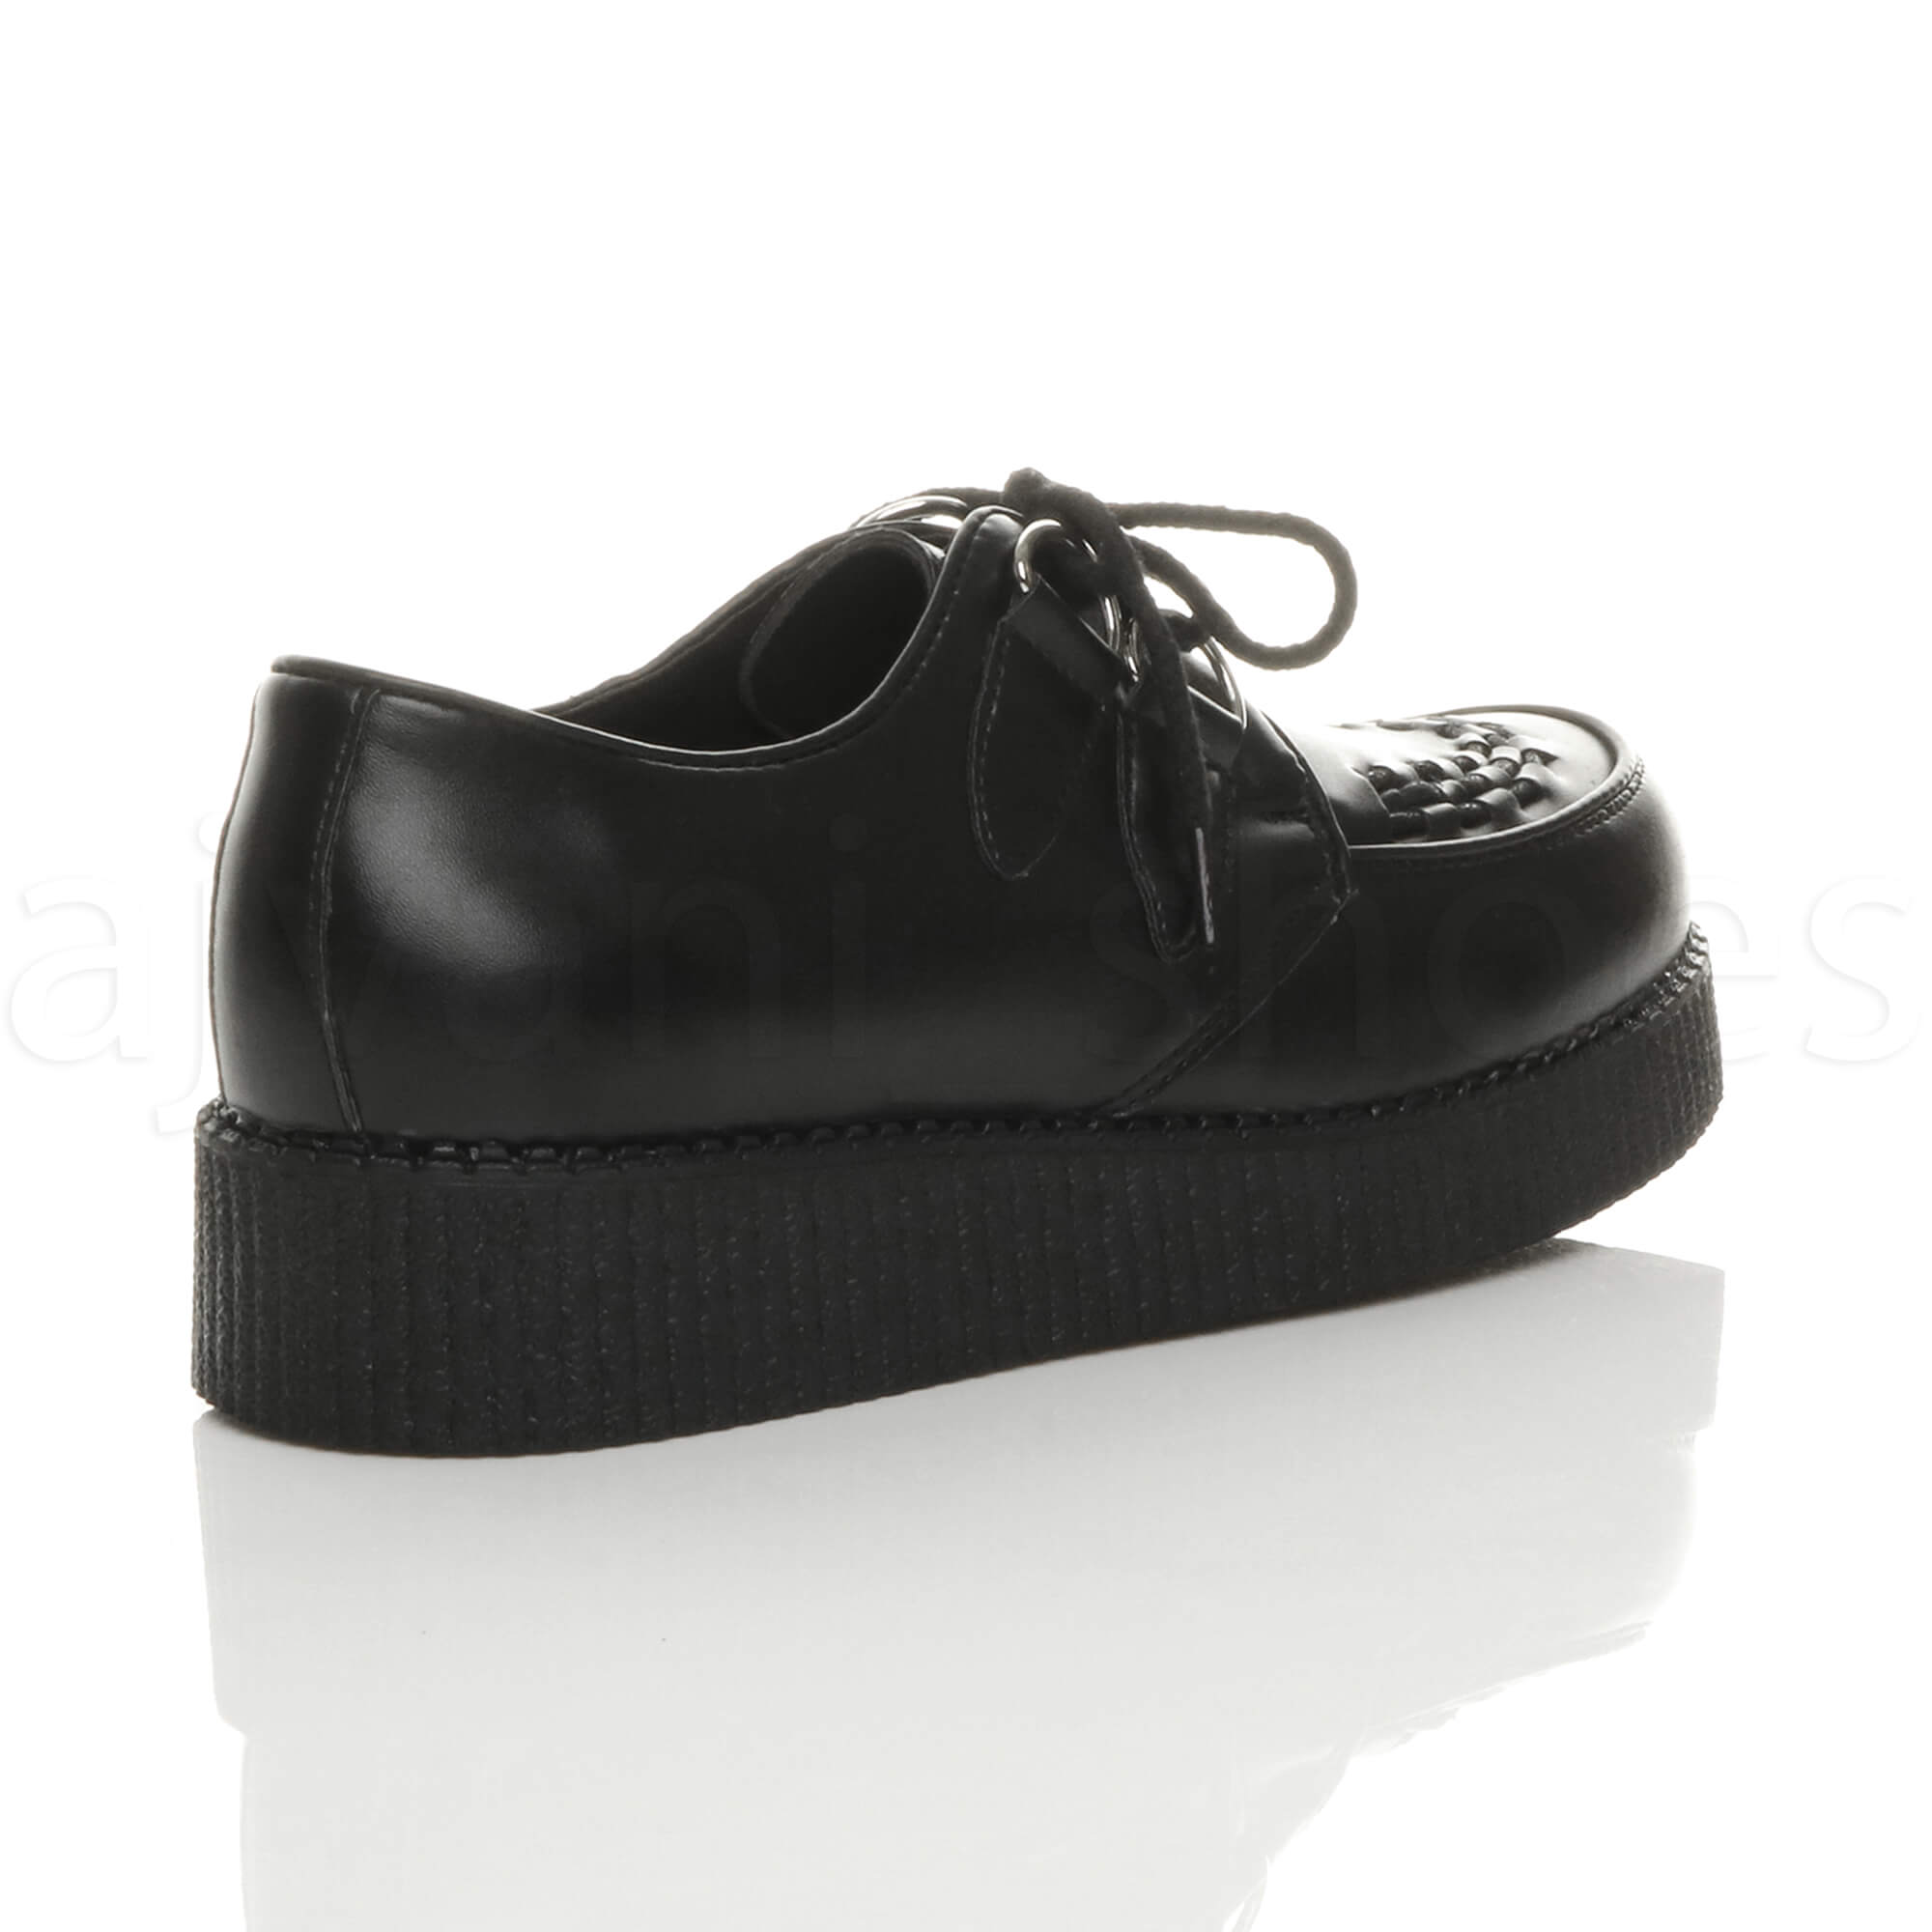 MENS-PLATFORM-WEDGE-LACE-UP-GOTH-PUNK-BROTHEL-CREEPERS-BEETLE-CRUSHERS-SHOES thumbnail 5